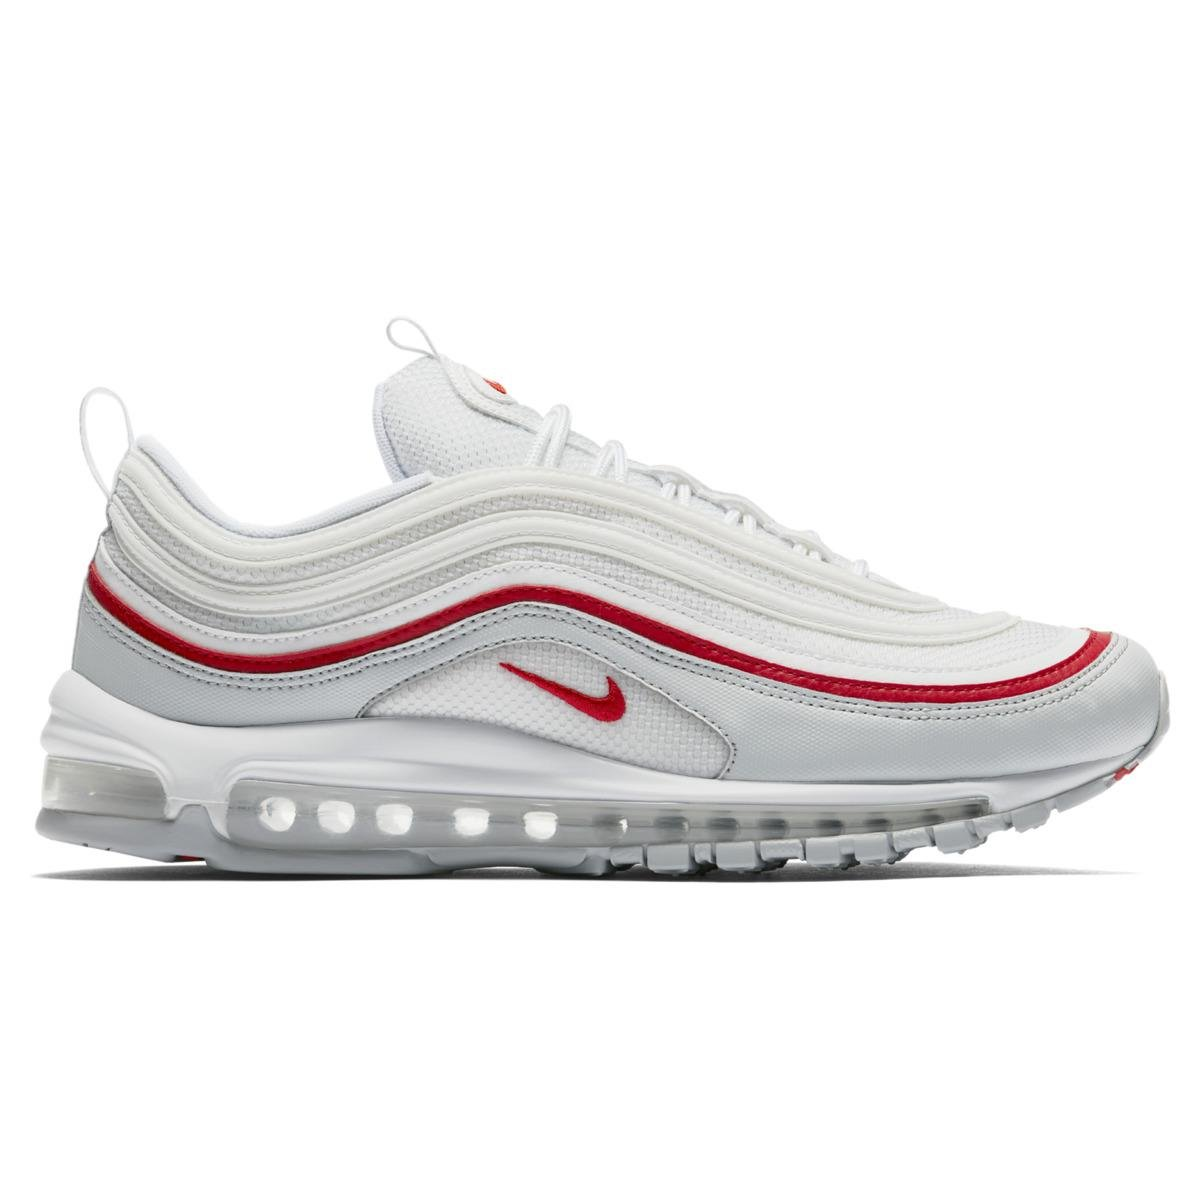 official photos 5d18c 67140 switzerland nike new womens vapor court tennis shoes white red bronze 8.5  1754b 04736  coupon code for nike air max 97 og casual trainers in gray for  men ...